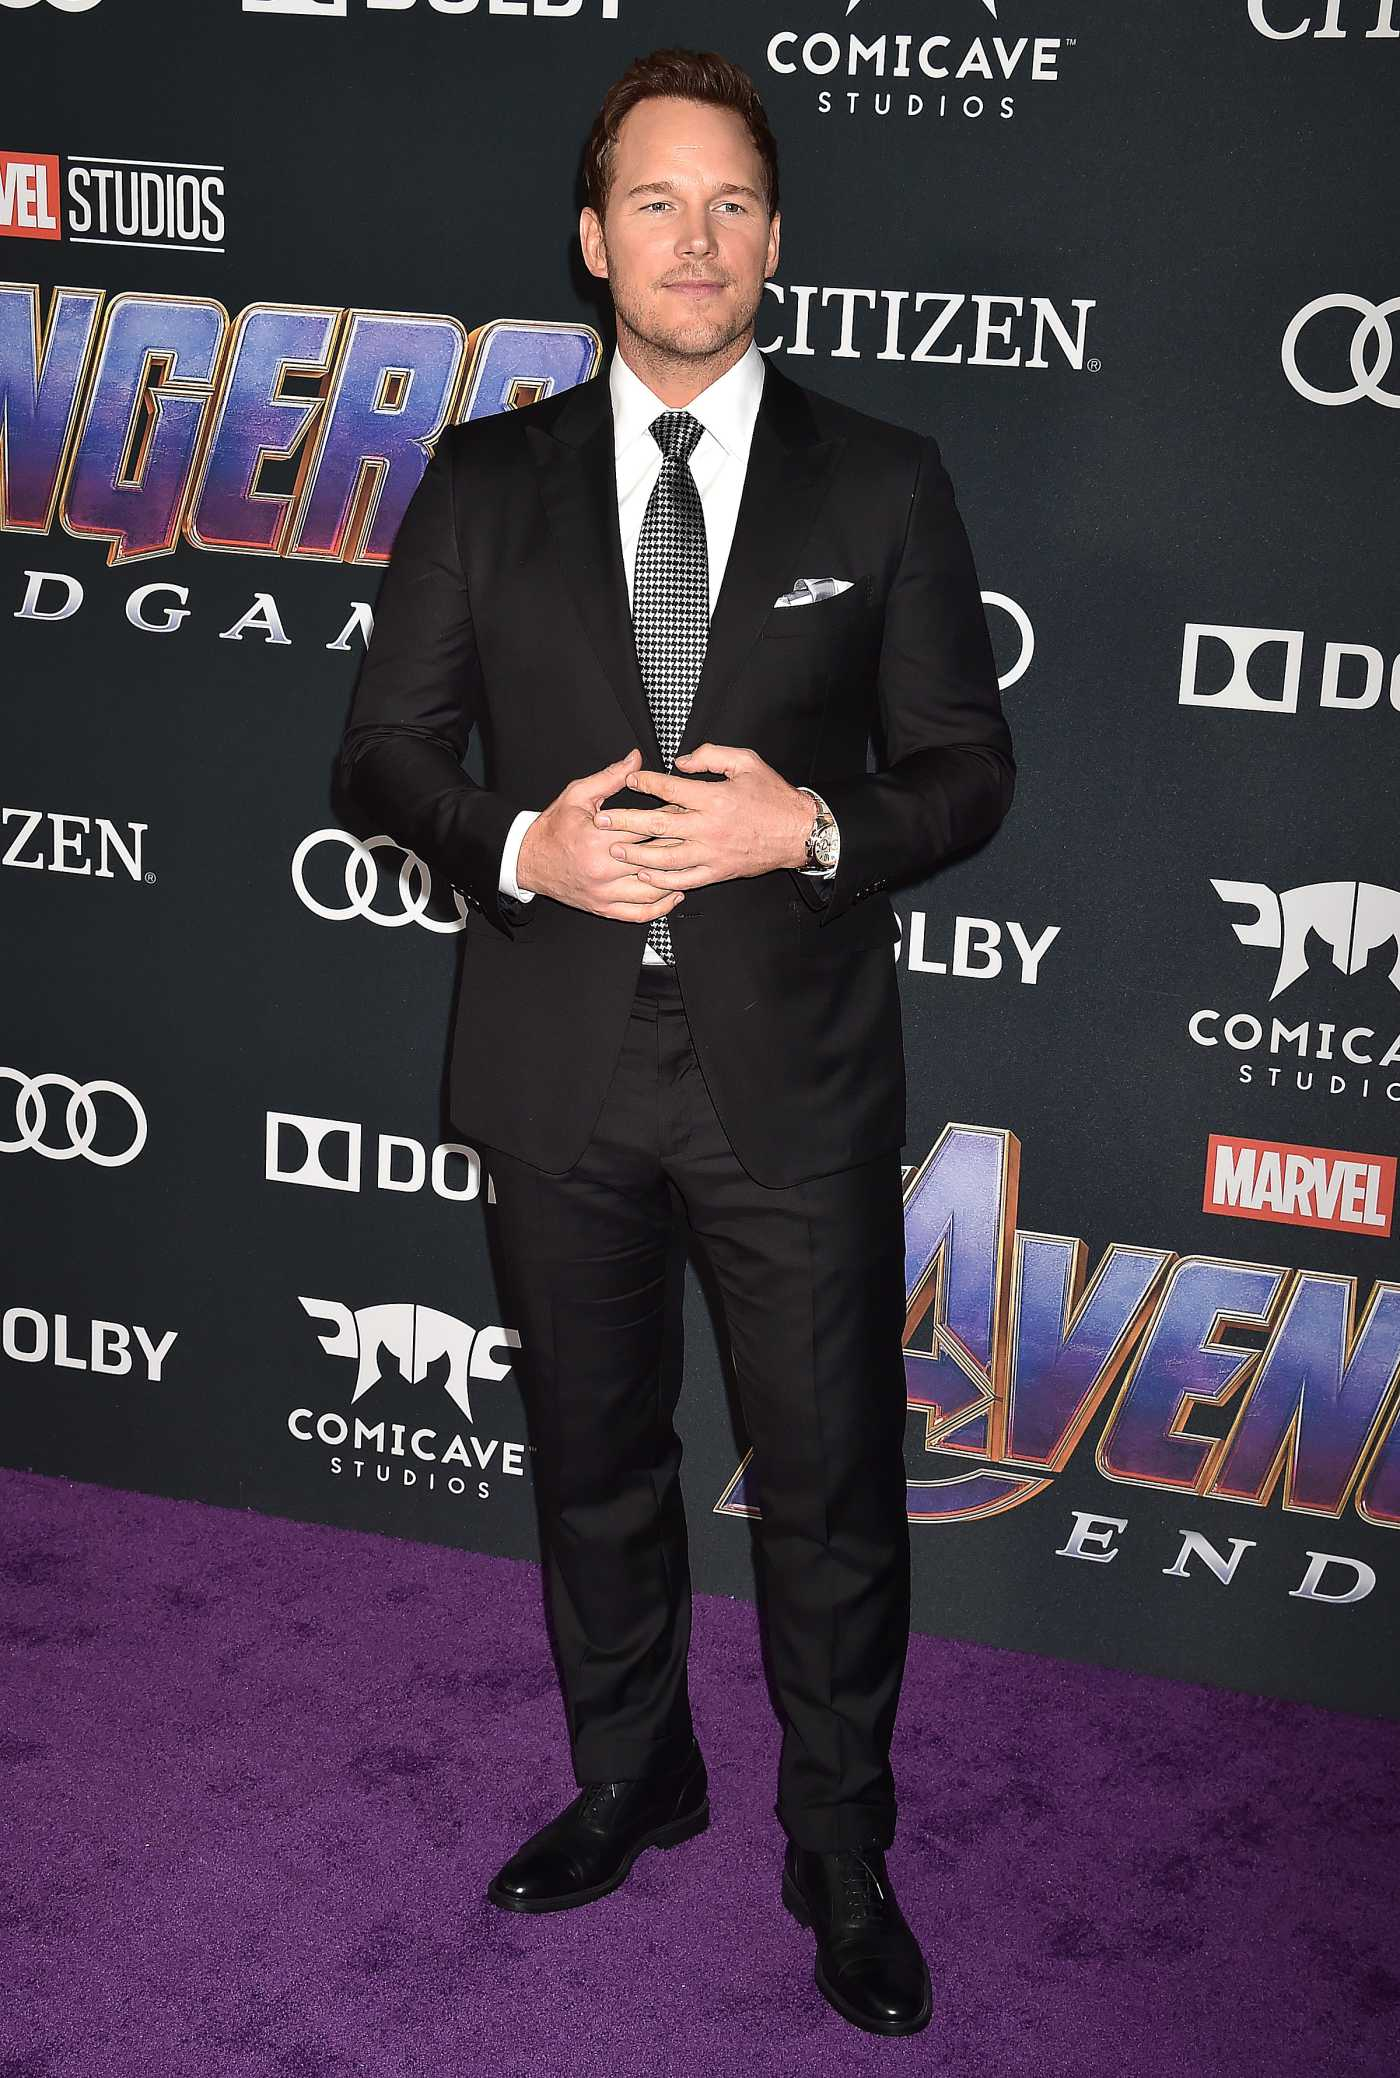 Chris Pratt Attends Avengers: Endgame Premiere in Los Angeles 04/22/2019